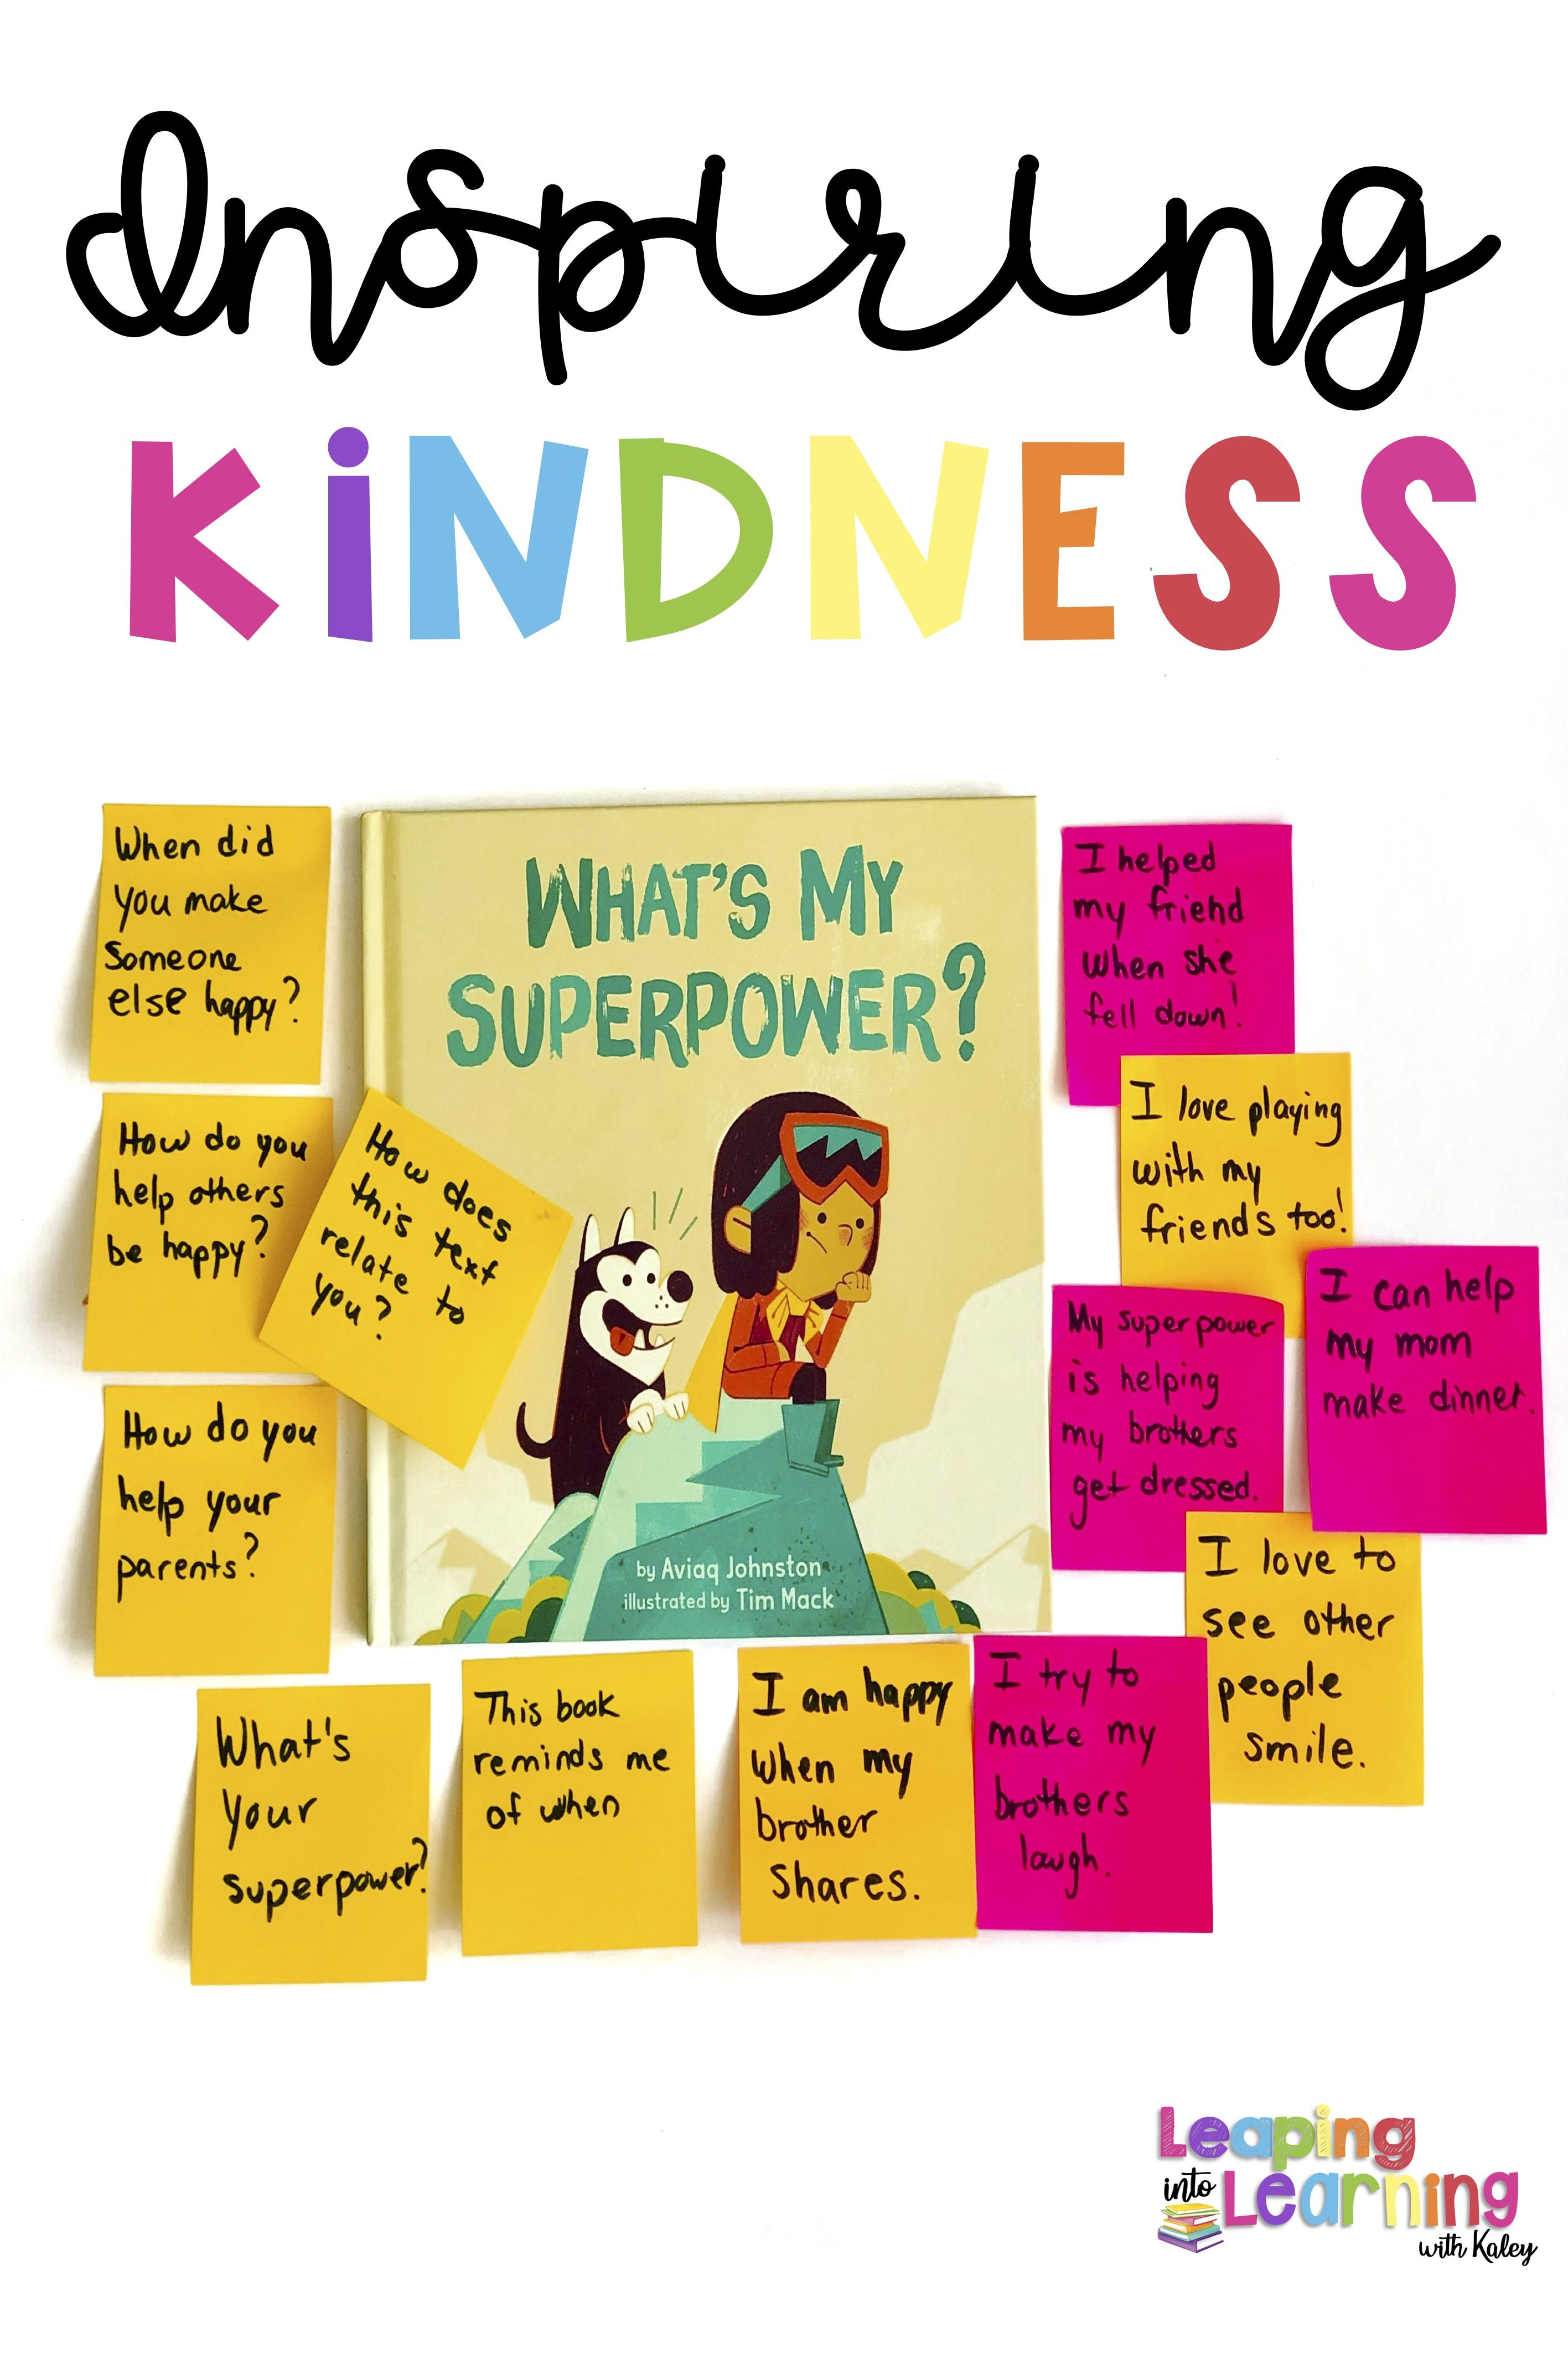 This Book Has An Amazing Message On Showing How Random Acts Of